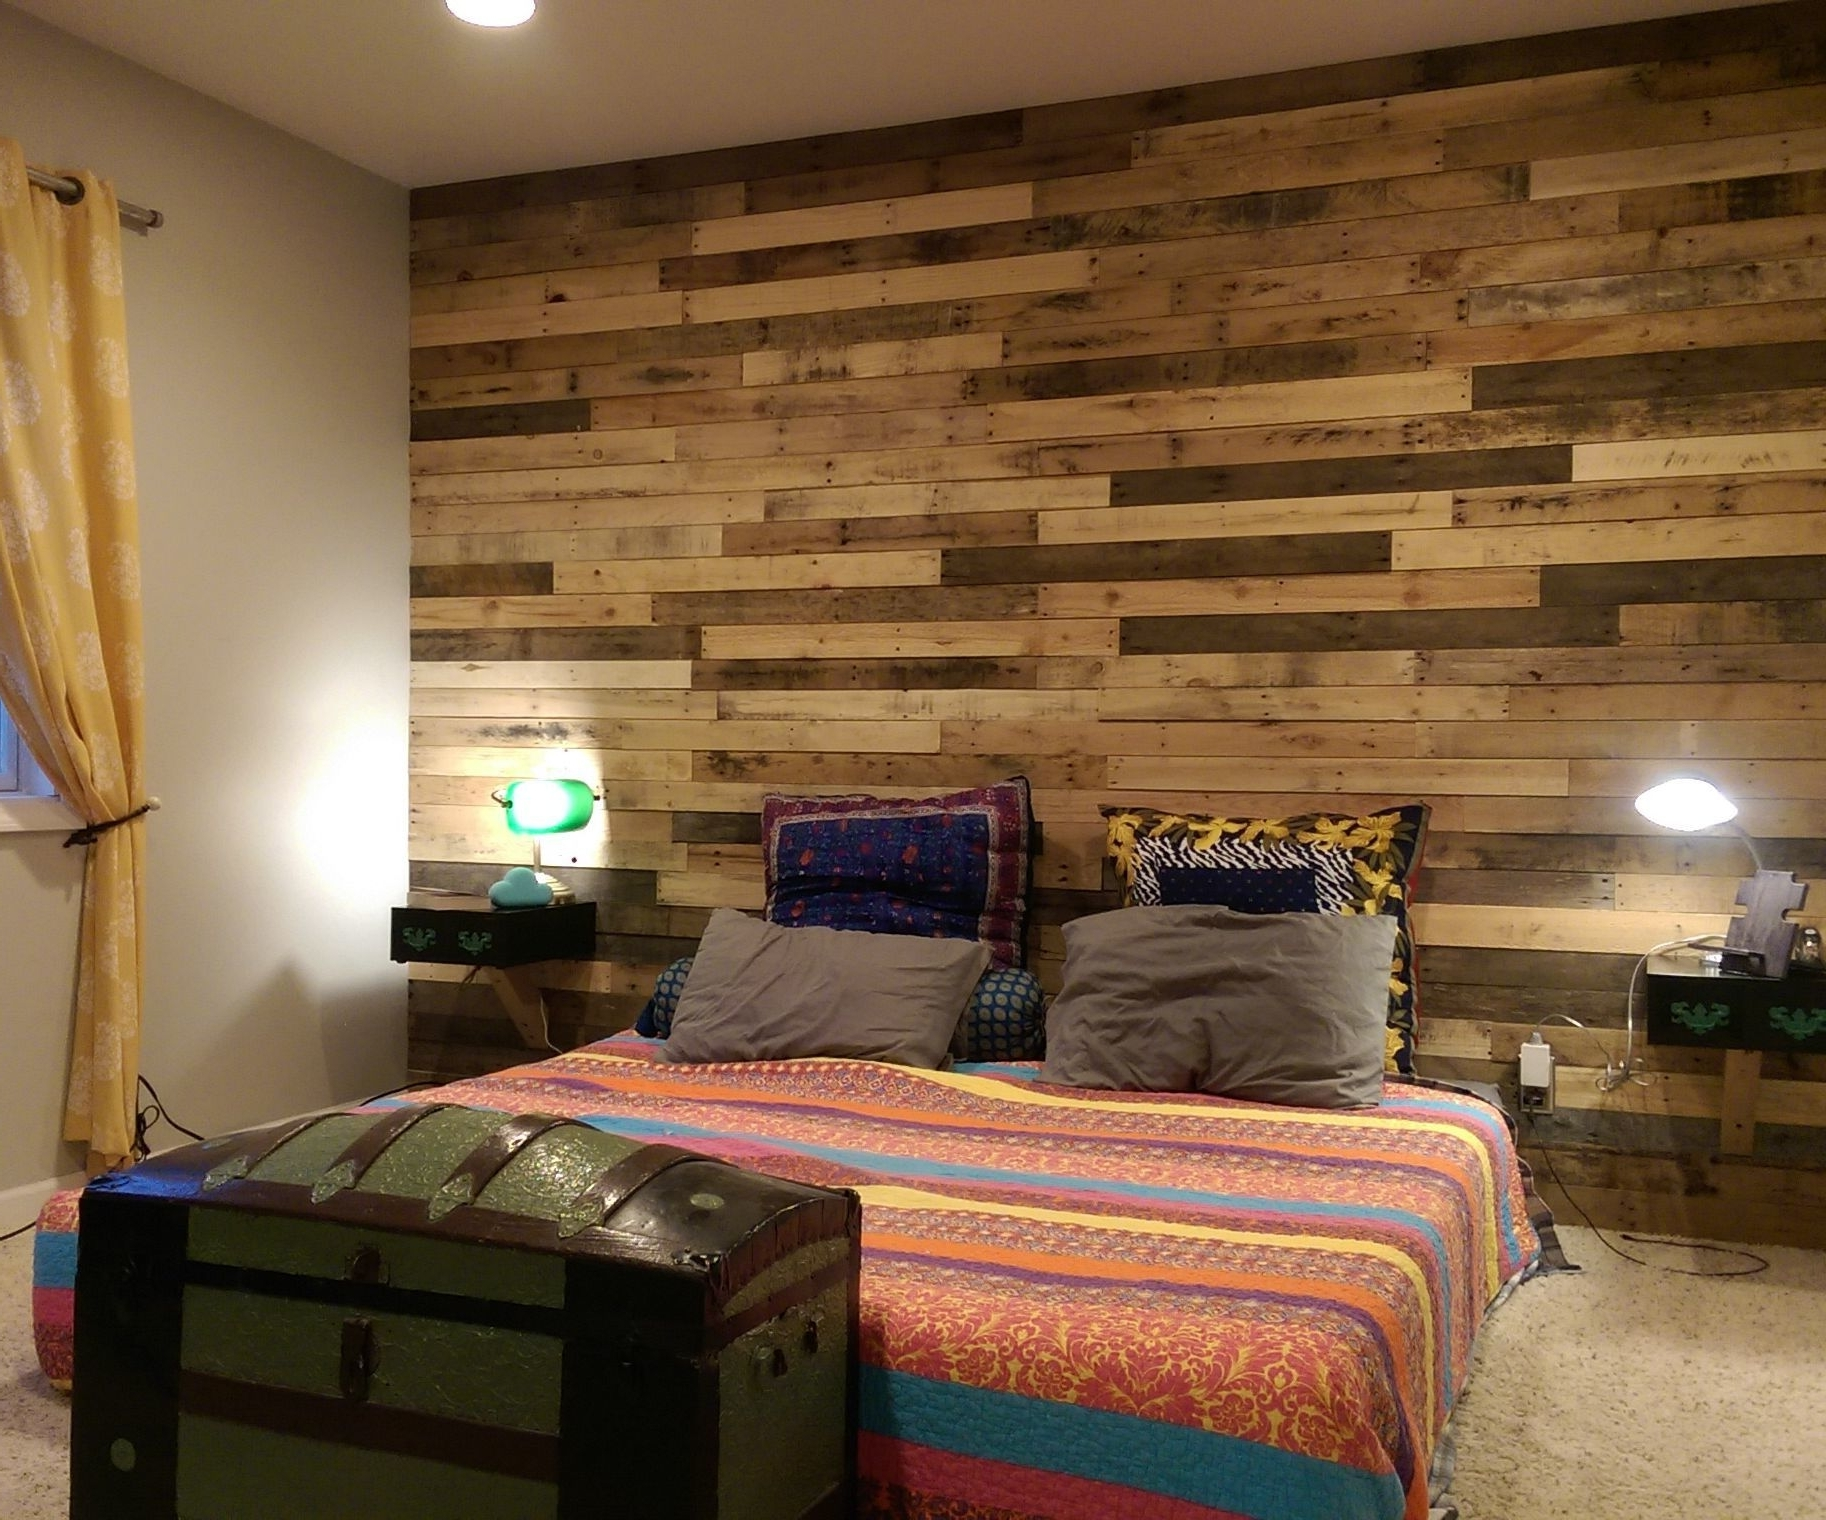 Pallet Accent Wall: 4 Steps (With Pictures) In Famous Wall Accents For Bedroom (Gallery 10 of 15)